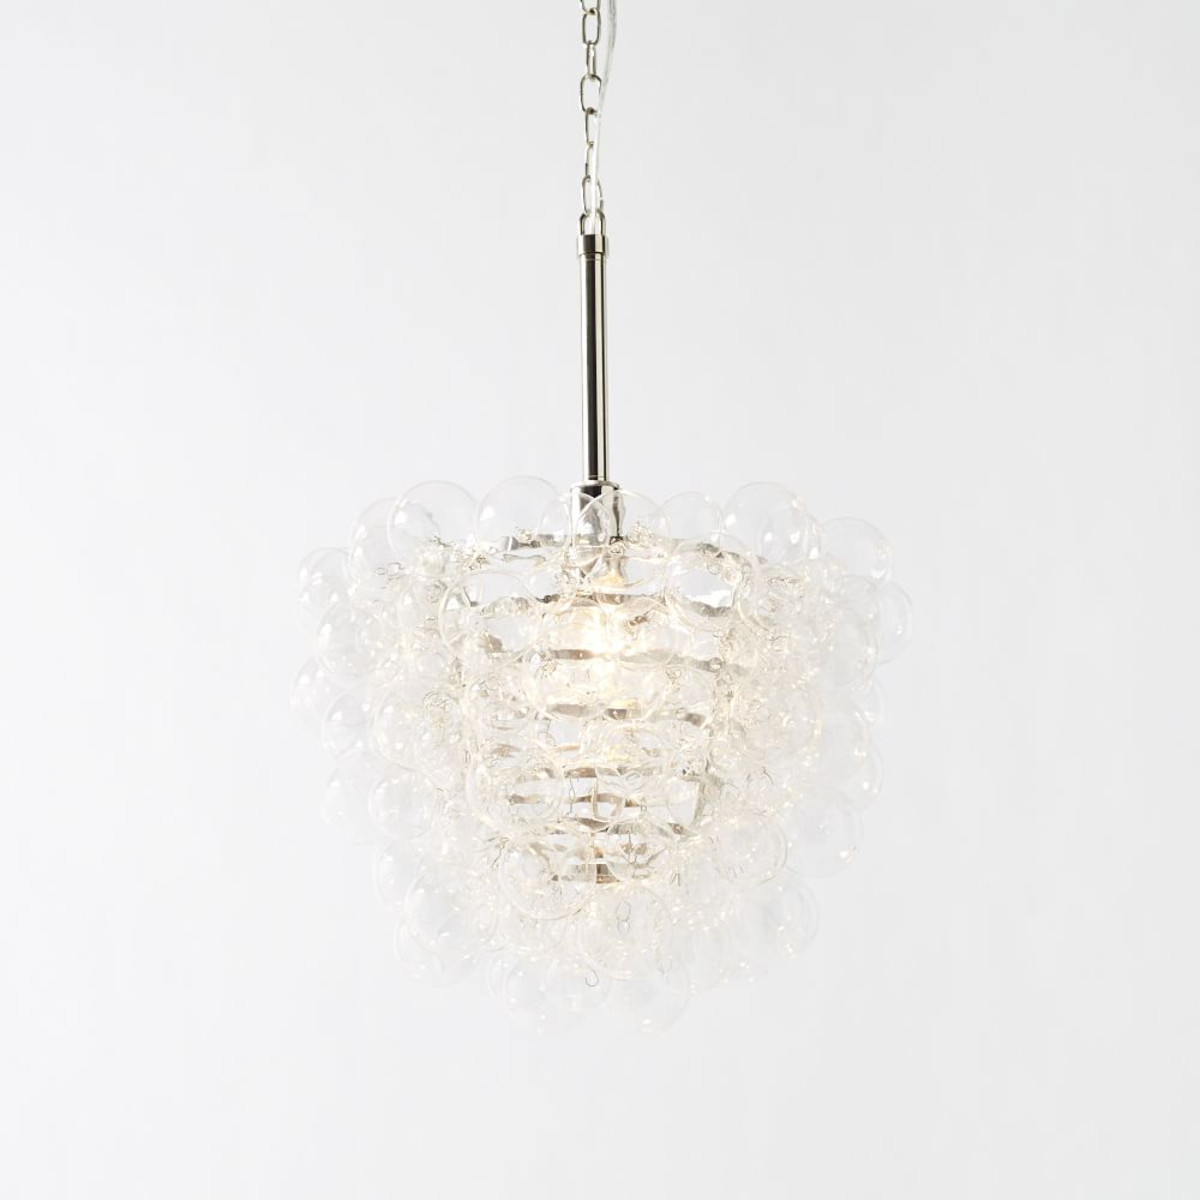 West Elm Chandelier | Modern Vintage Chandelier | West Elm Mobile Chandelier